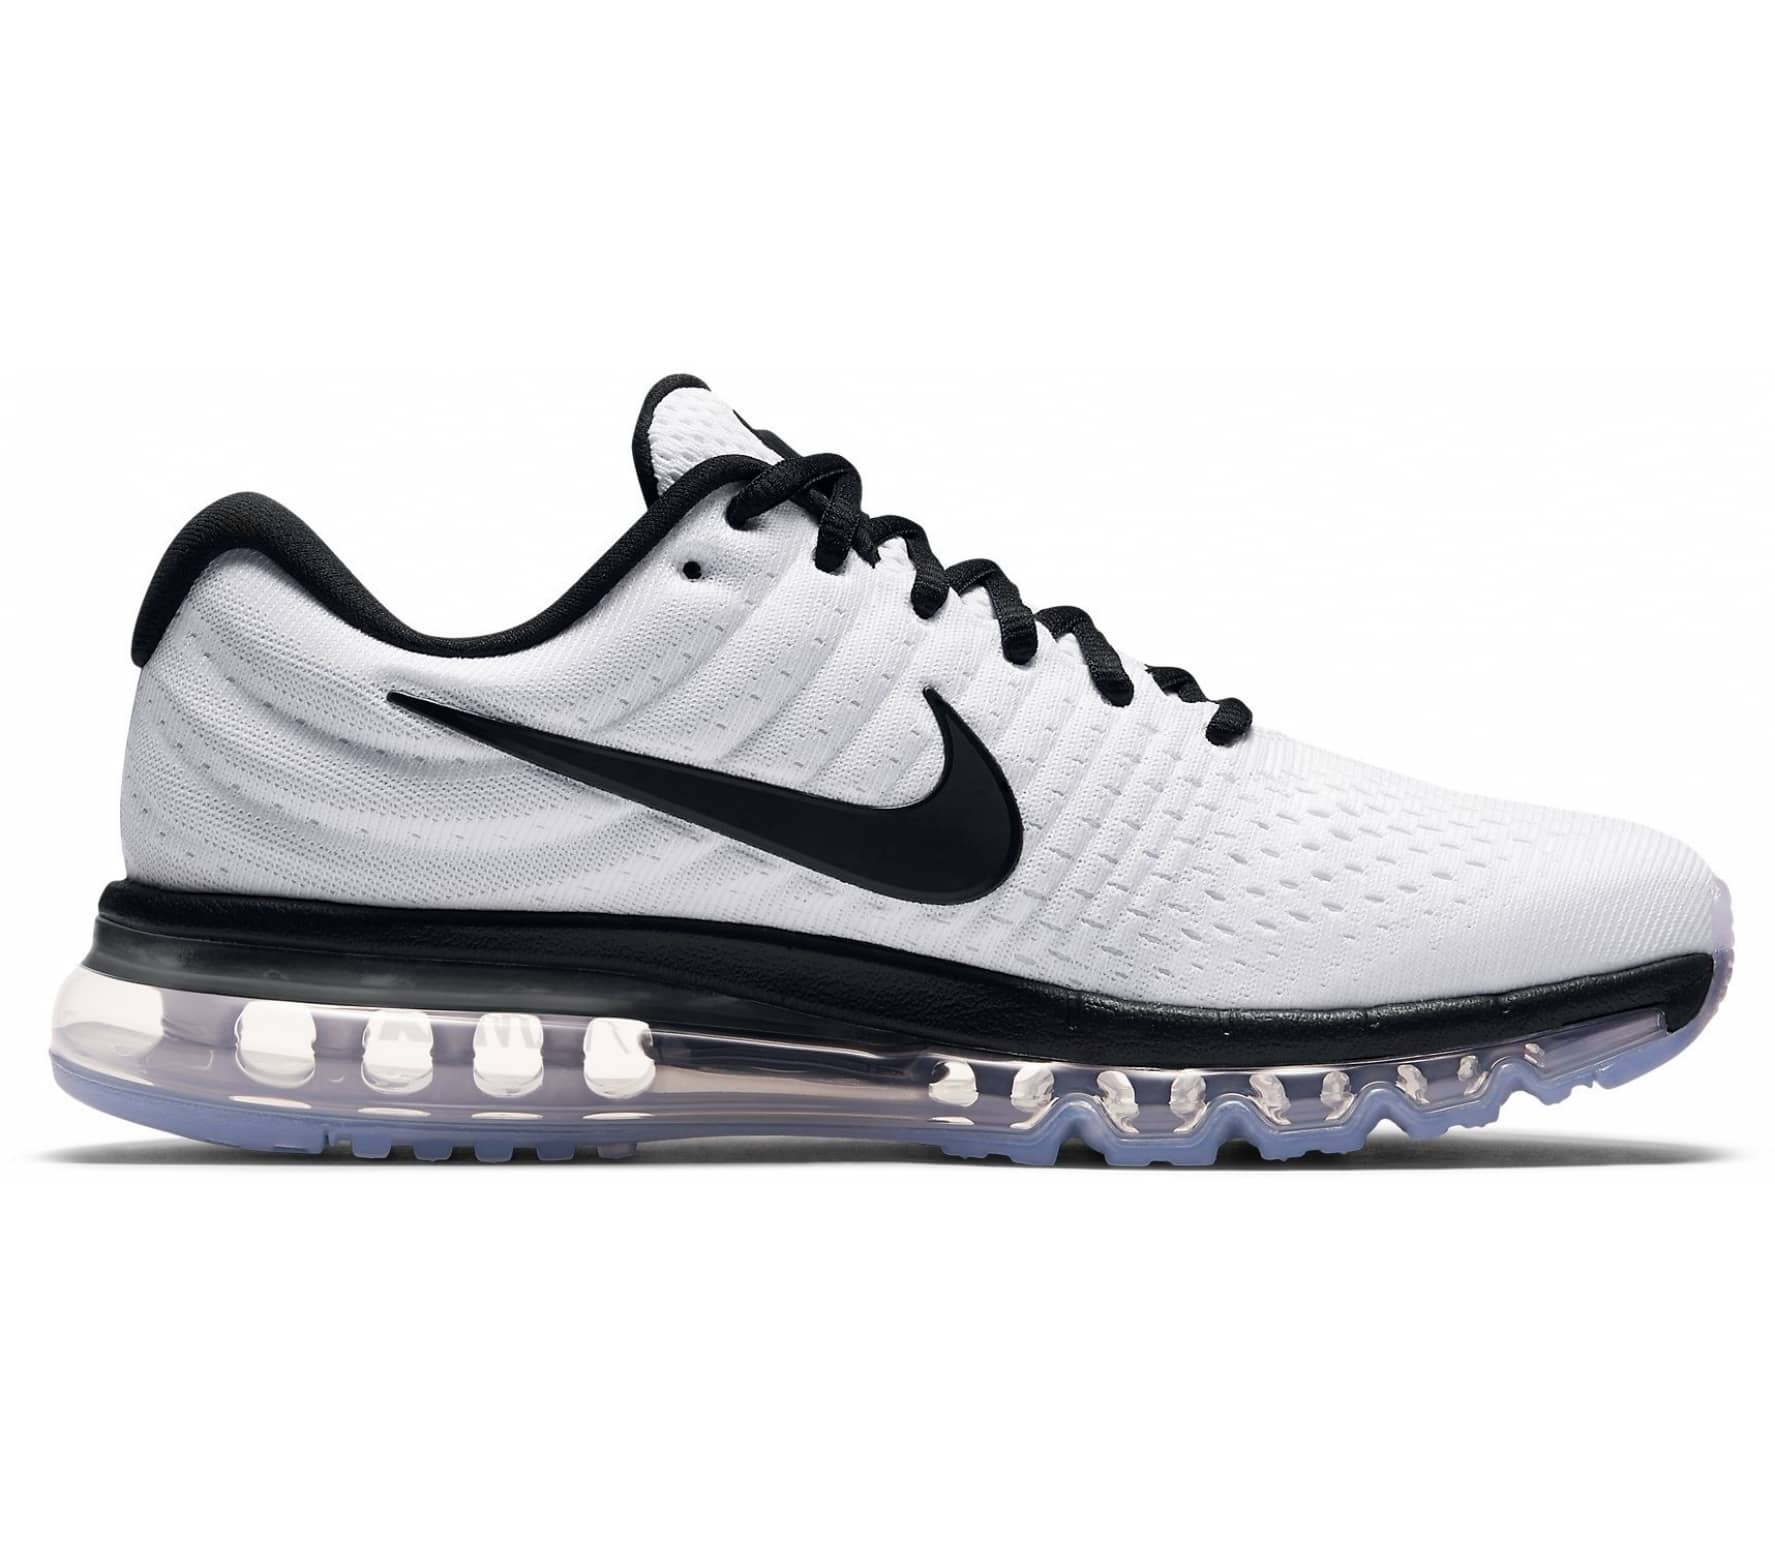 nike air max 2017 zwart wit